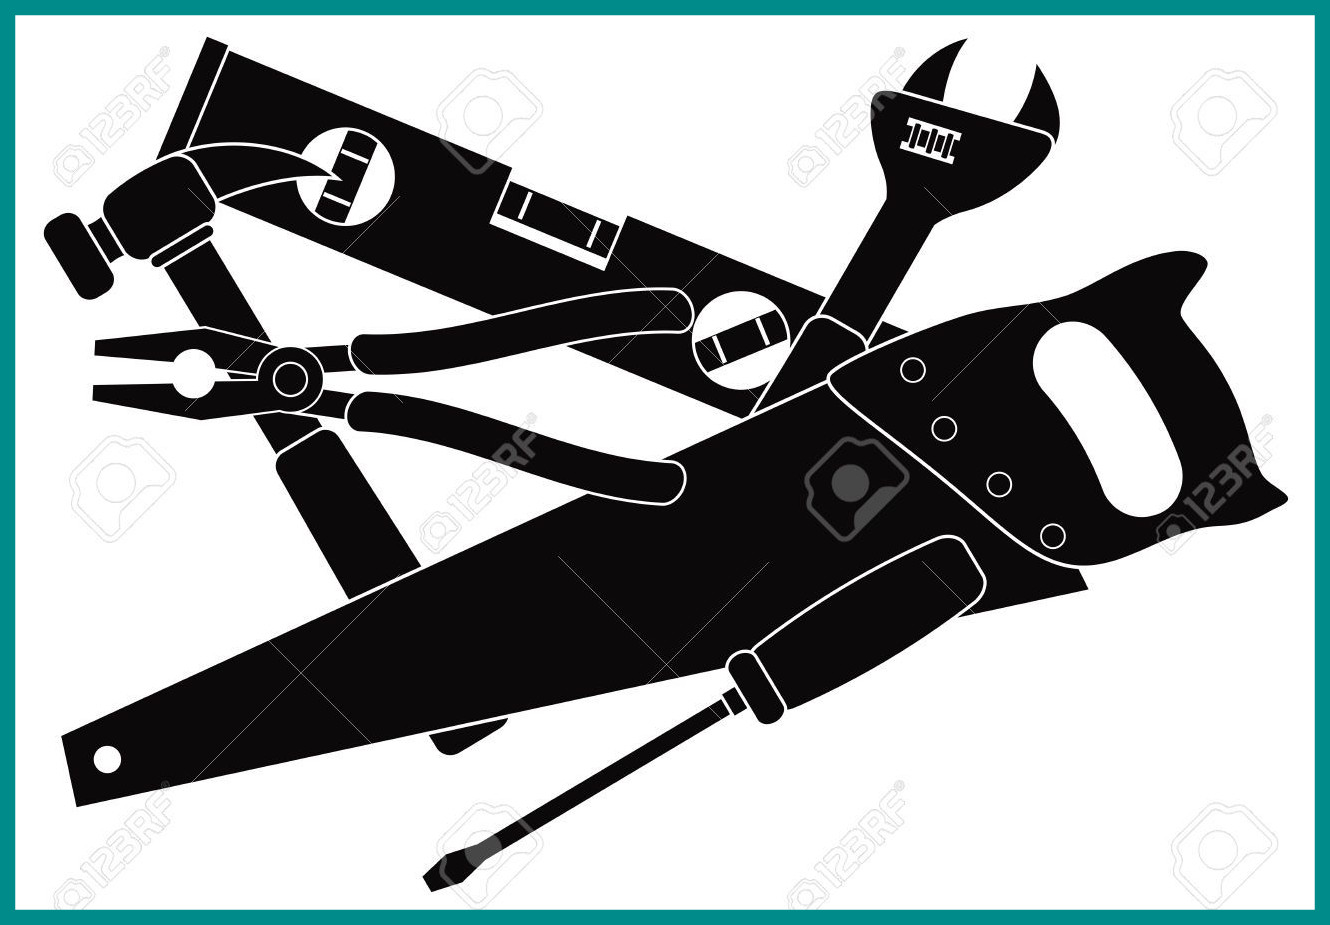 Carpentry clipart woodshop tool.  ideas of woodworking